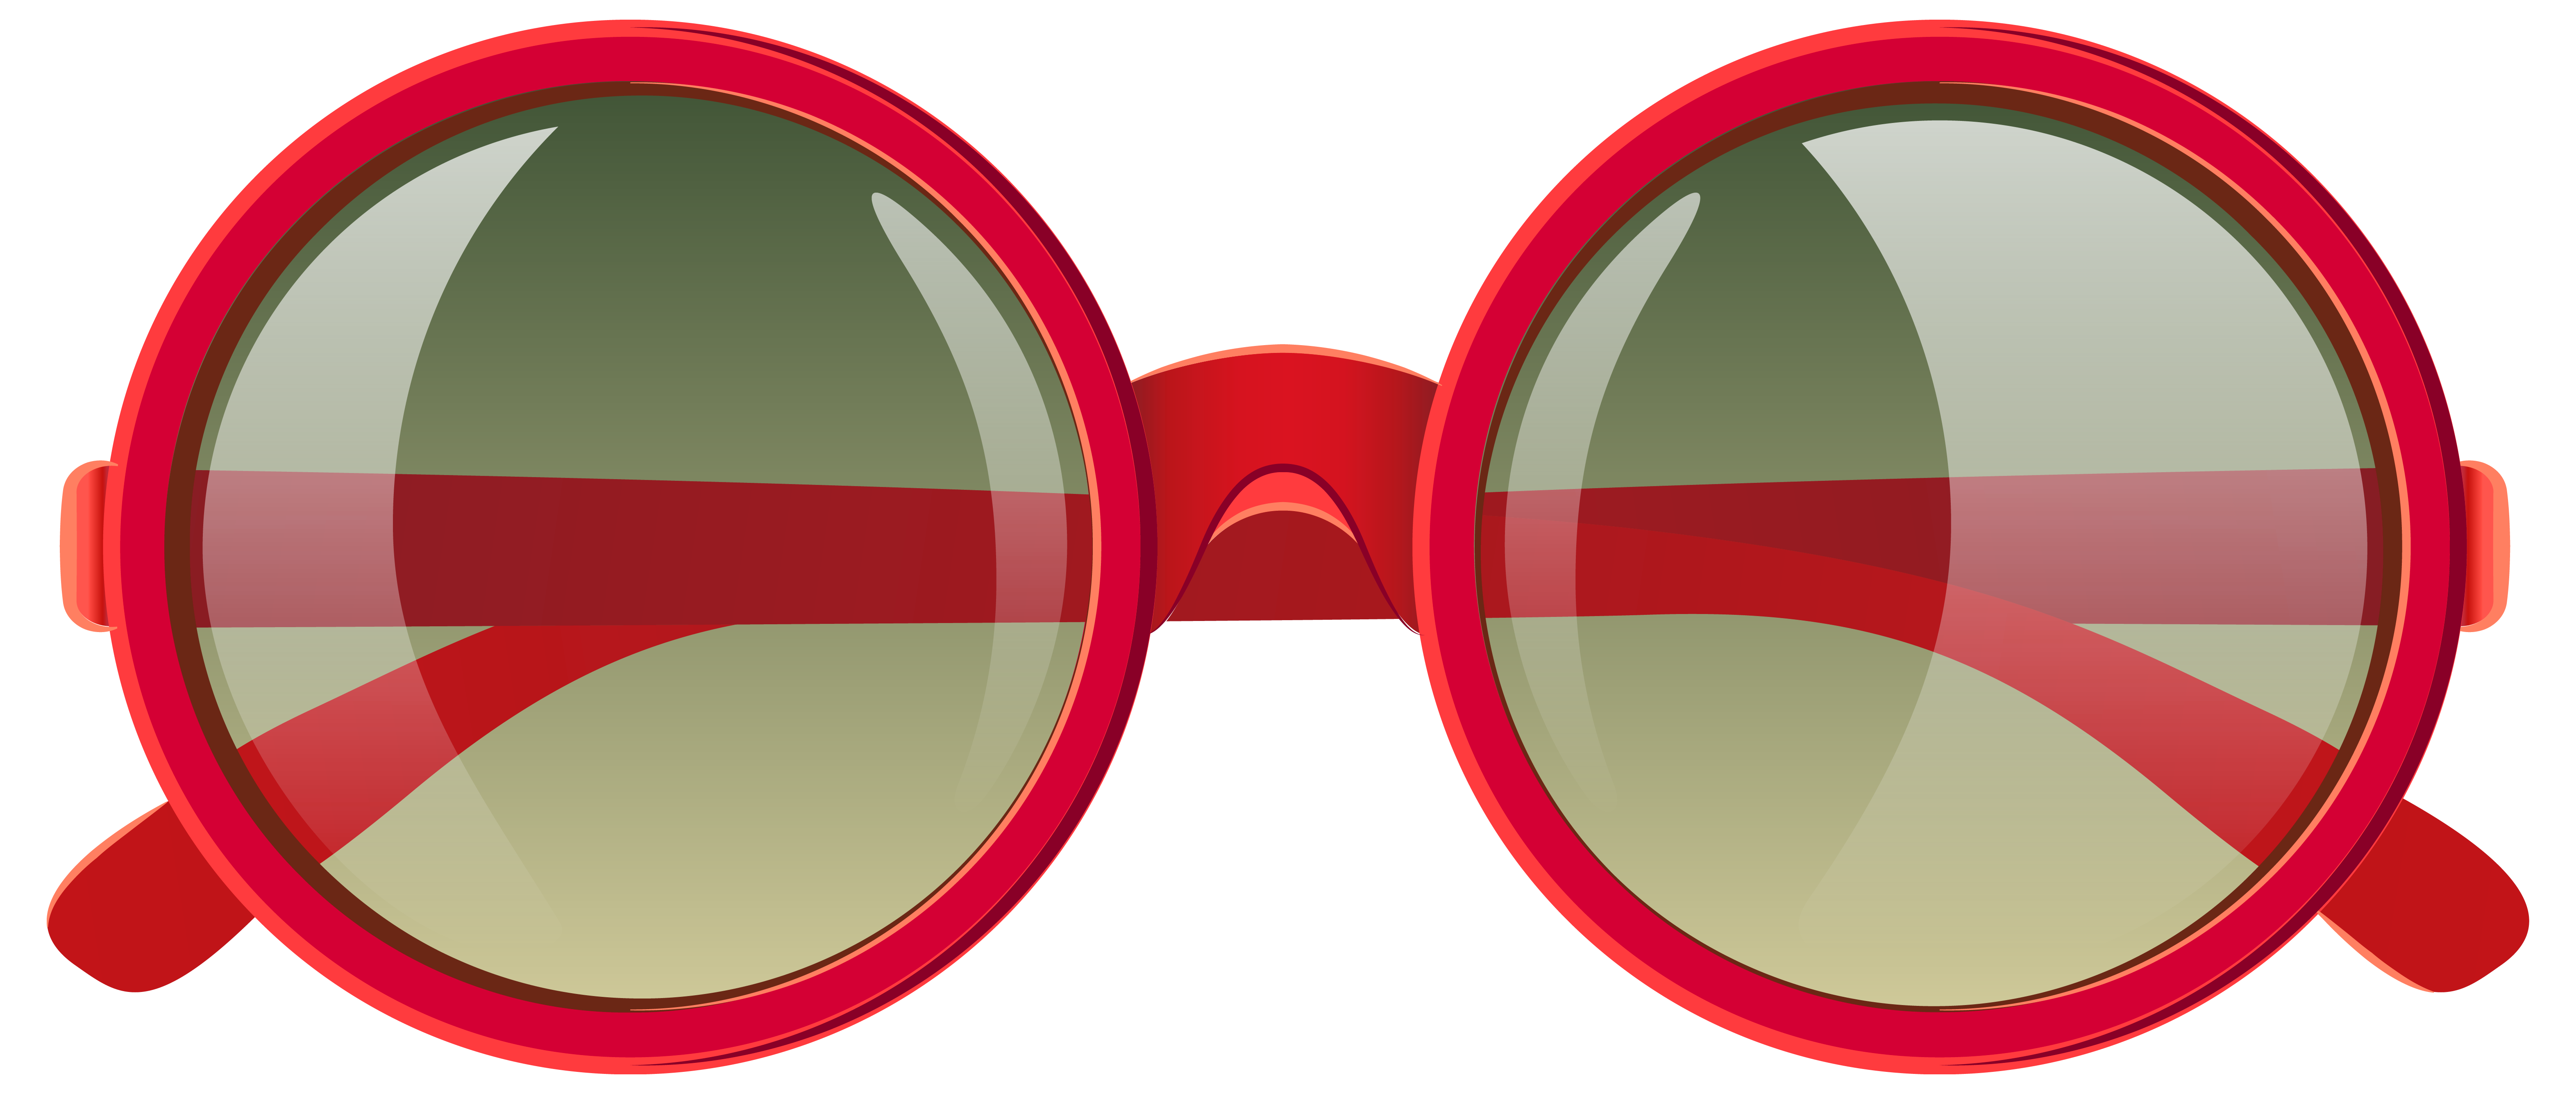 6287x2669 Cute Red Sunglasses Png Clipart Imageu200b Gallery Yopriceville